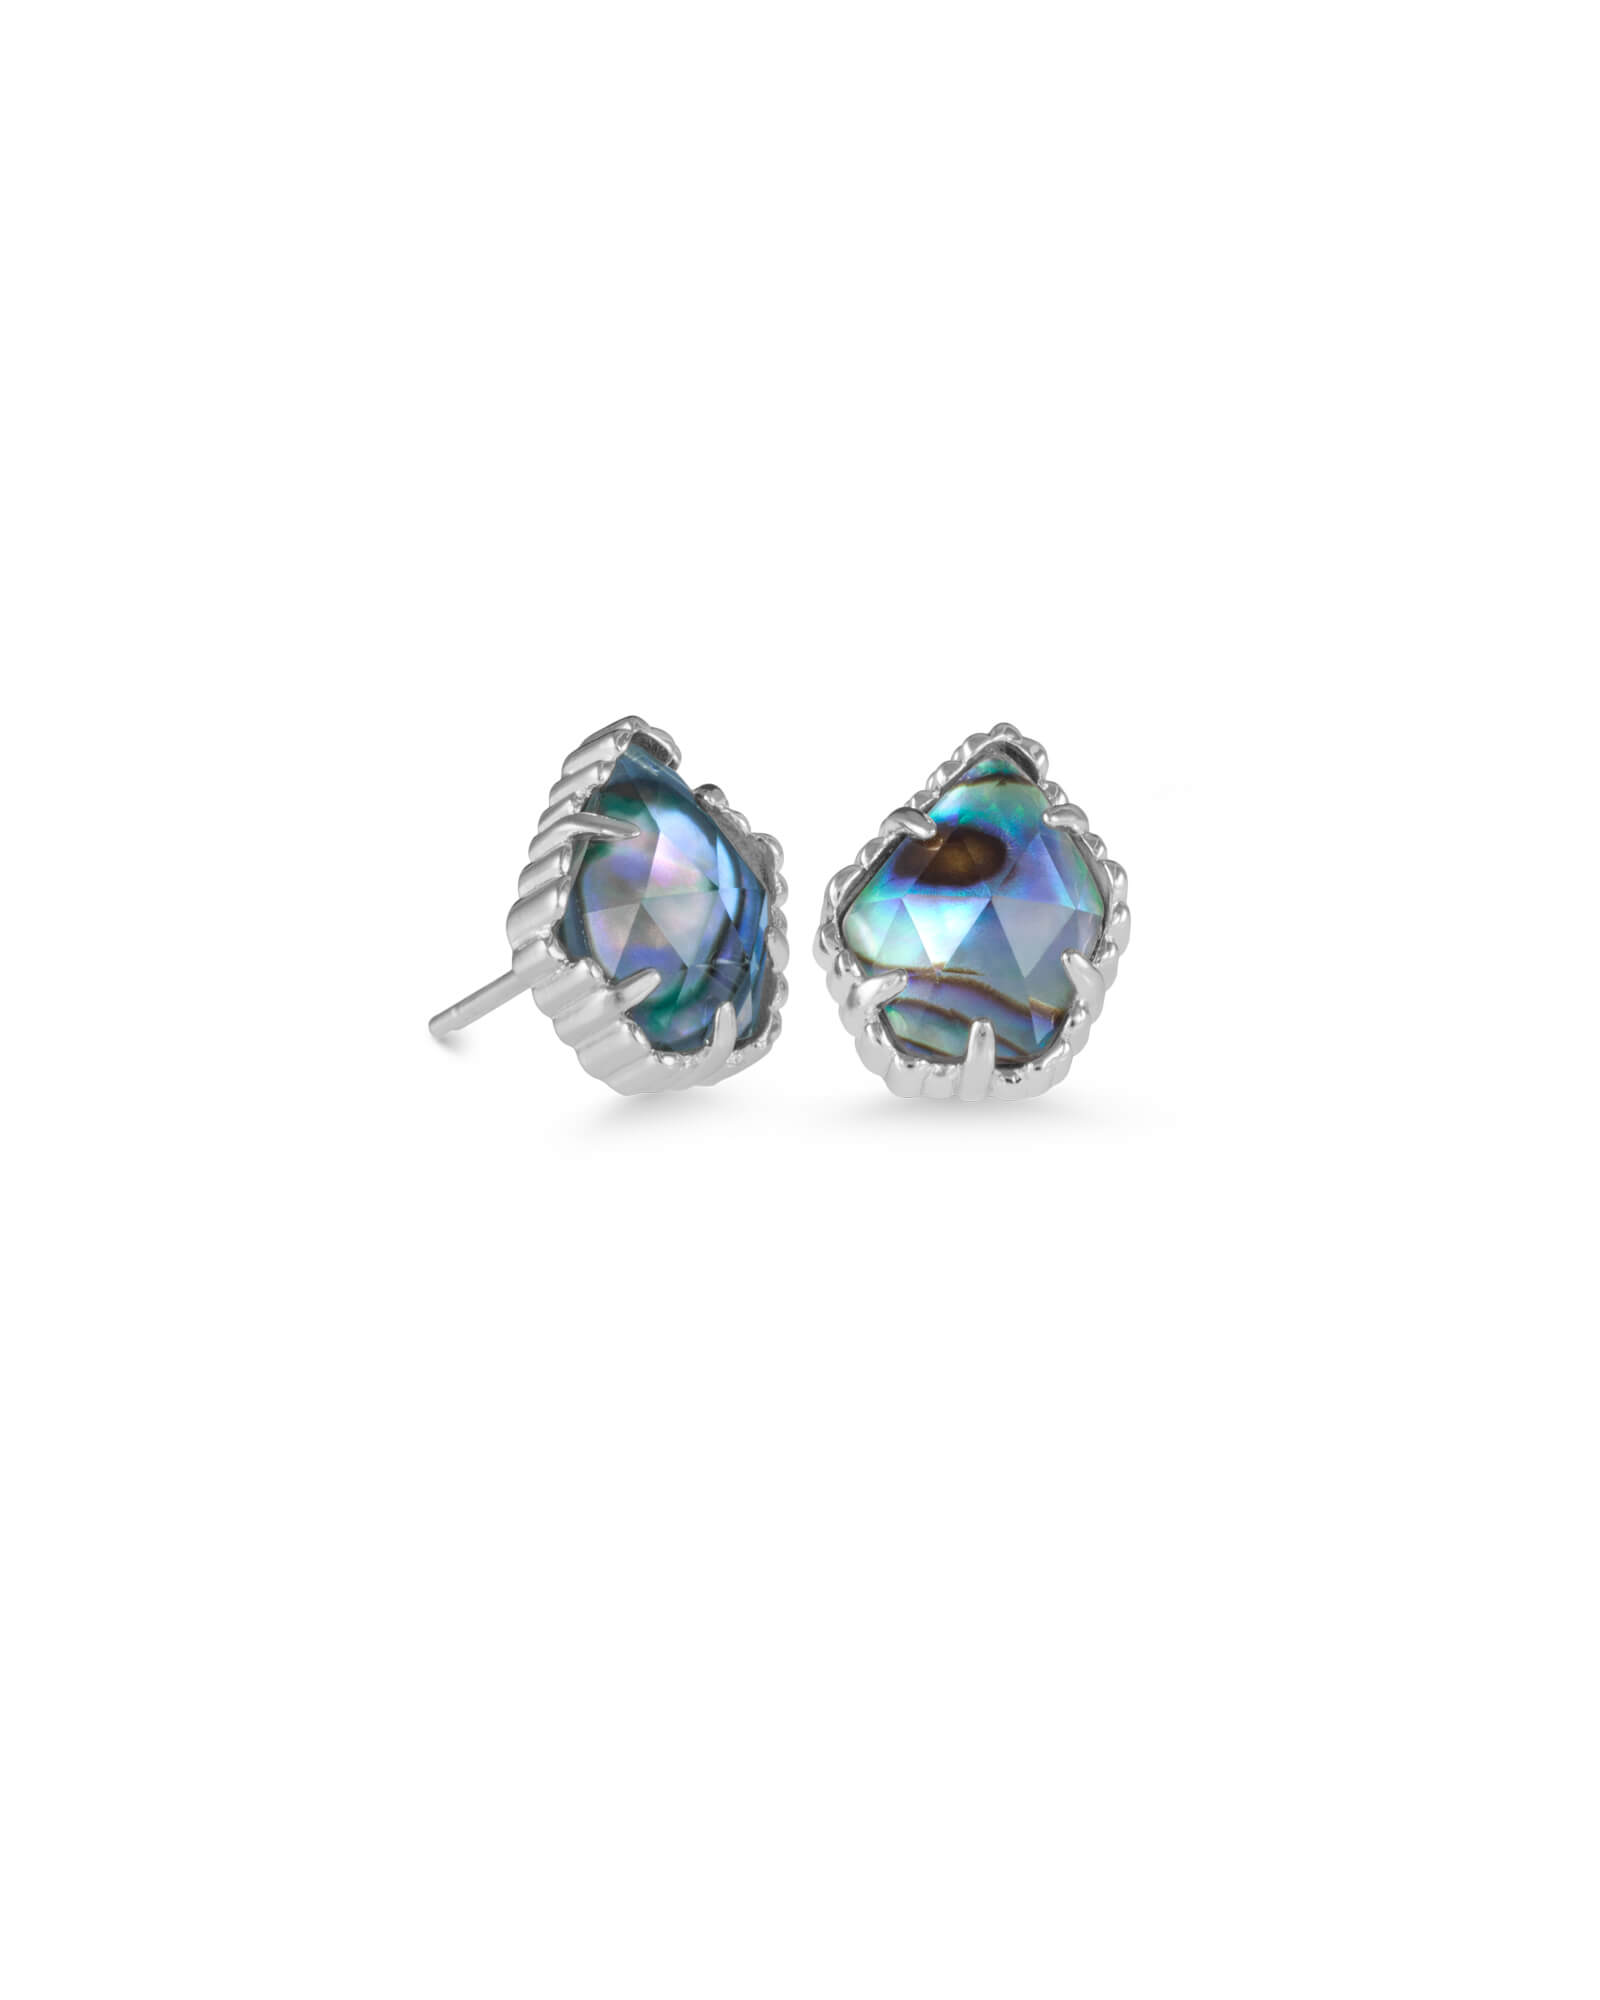 Tessa Silver Stud Earrings in Abalone Shell